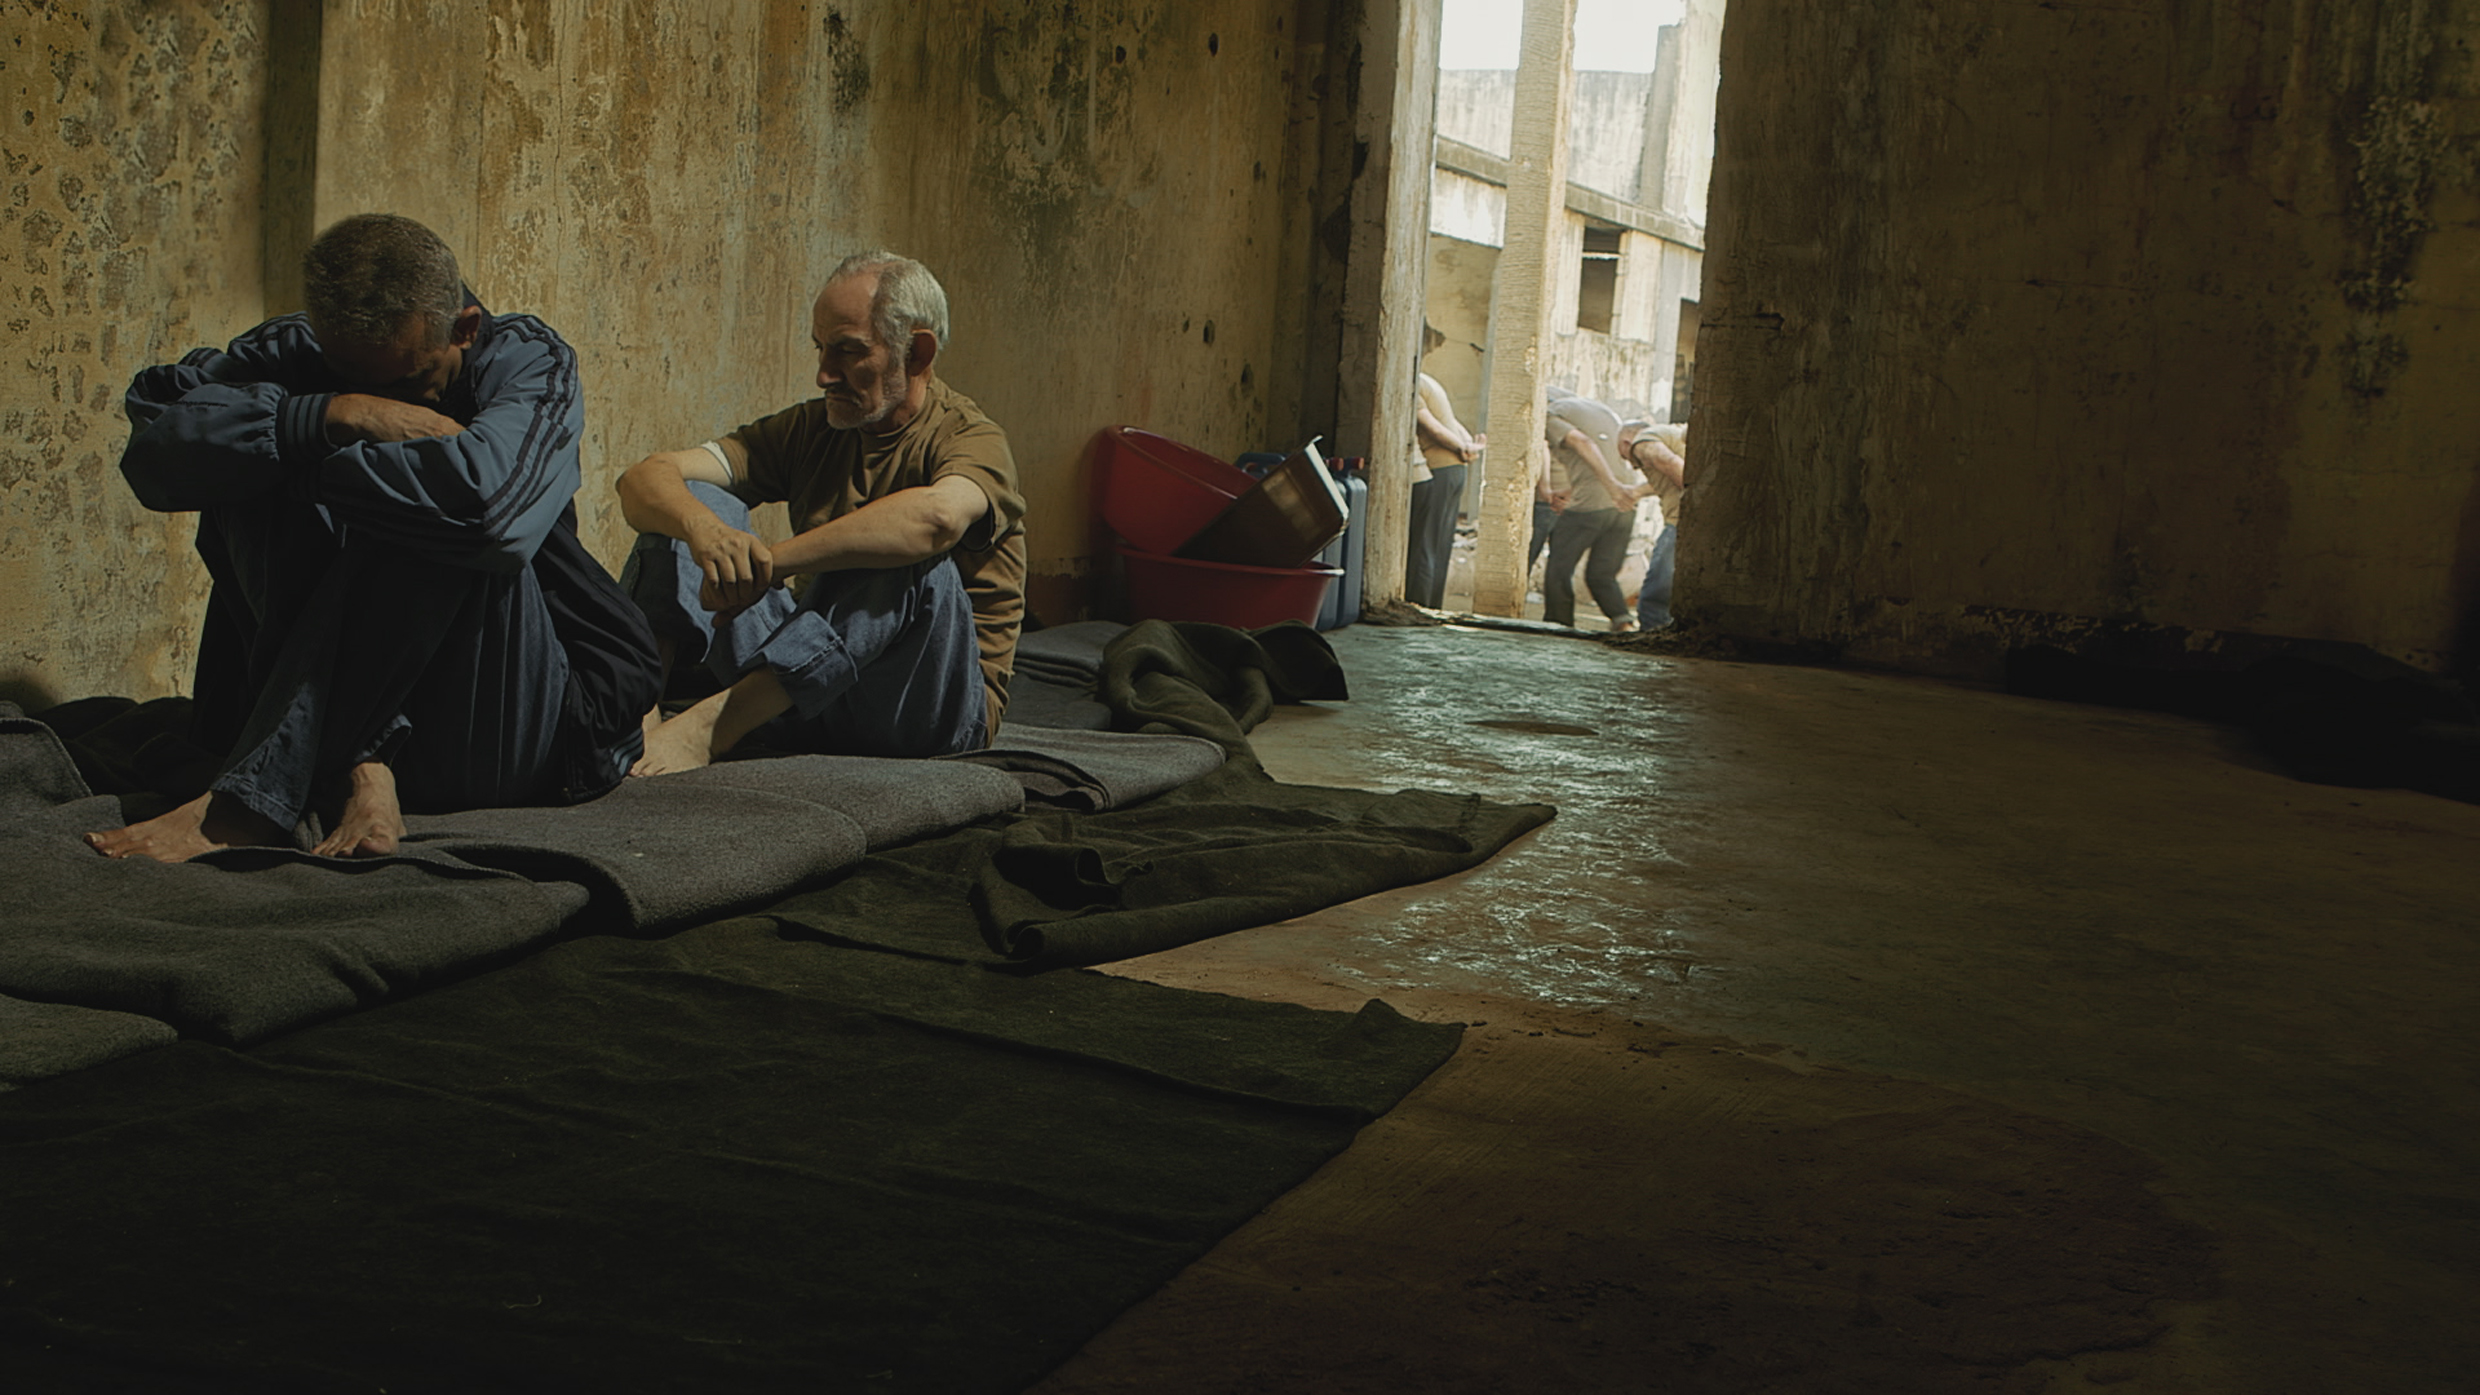 2 men sitting in a collectiv cell